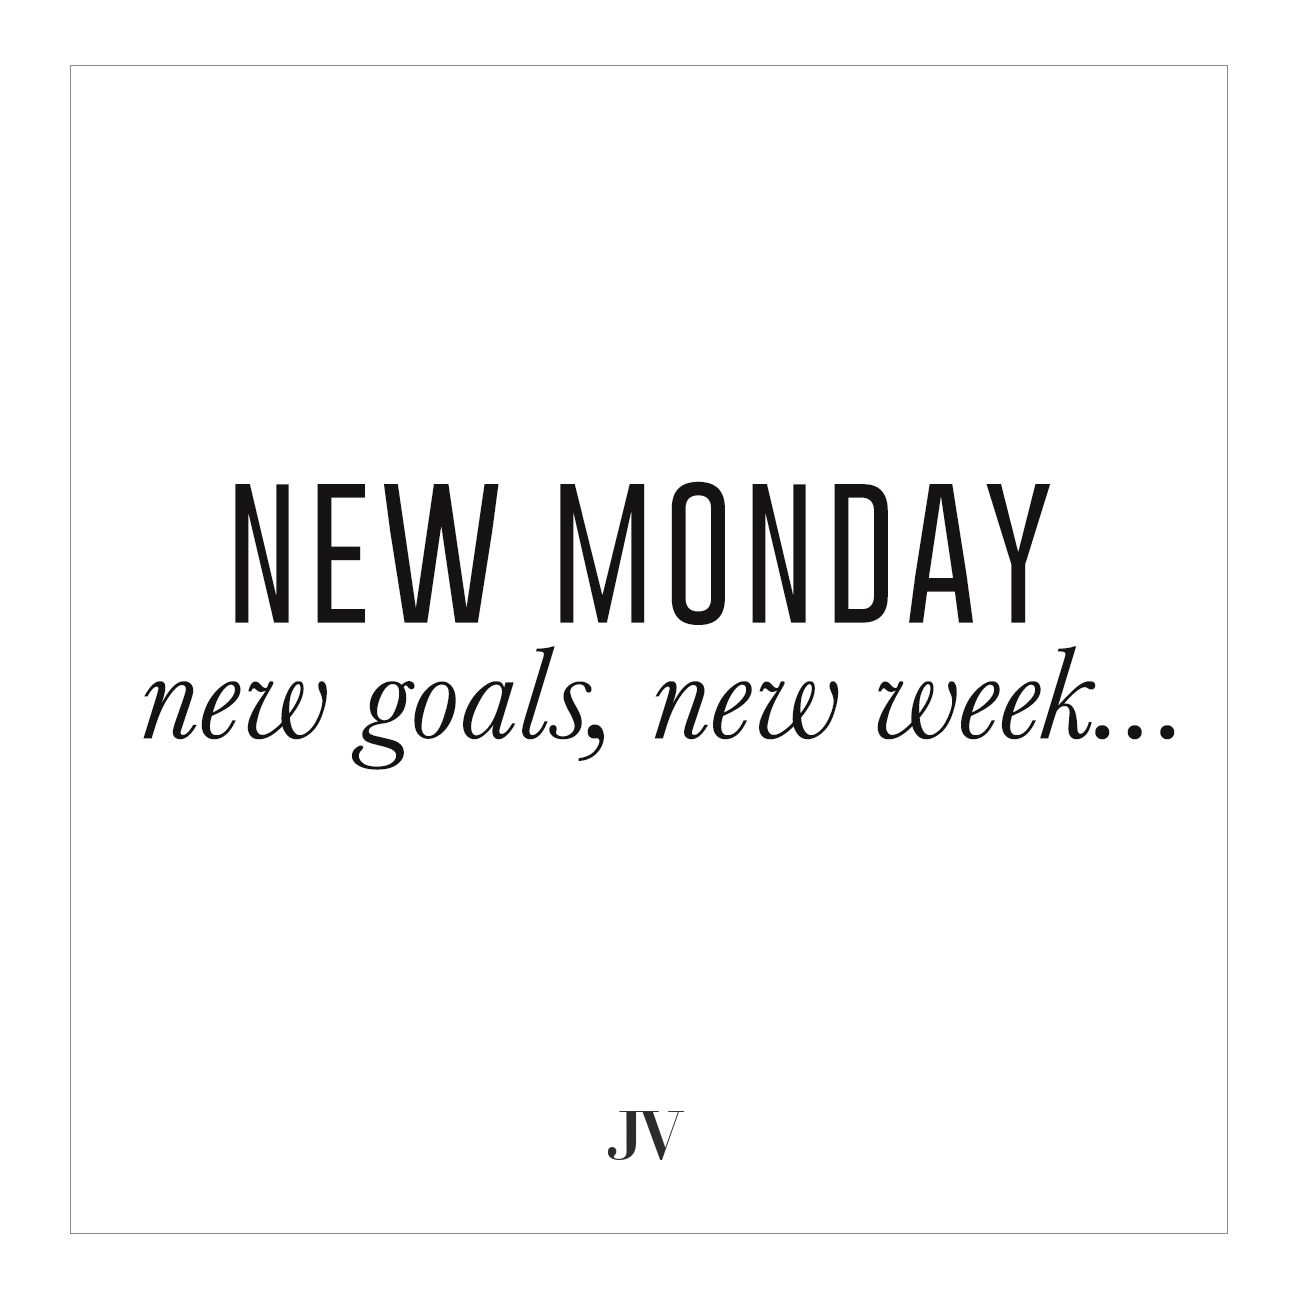 Week Quotes Custom Josh V  New Monday New Goals New Week  Quote  Days Of The Week